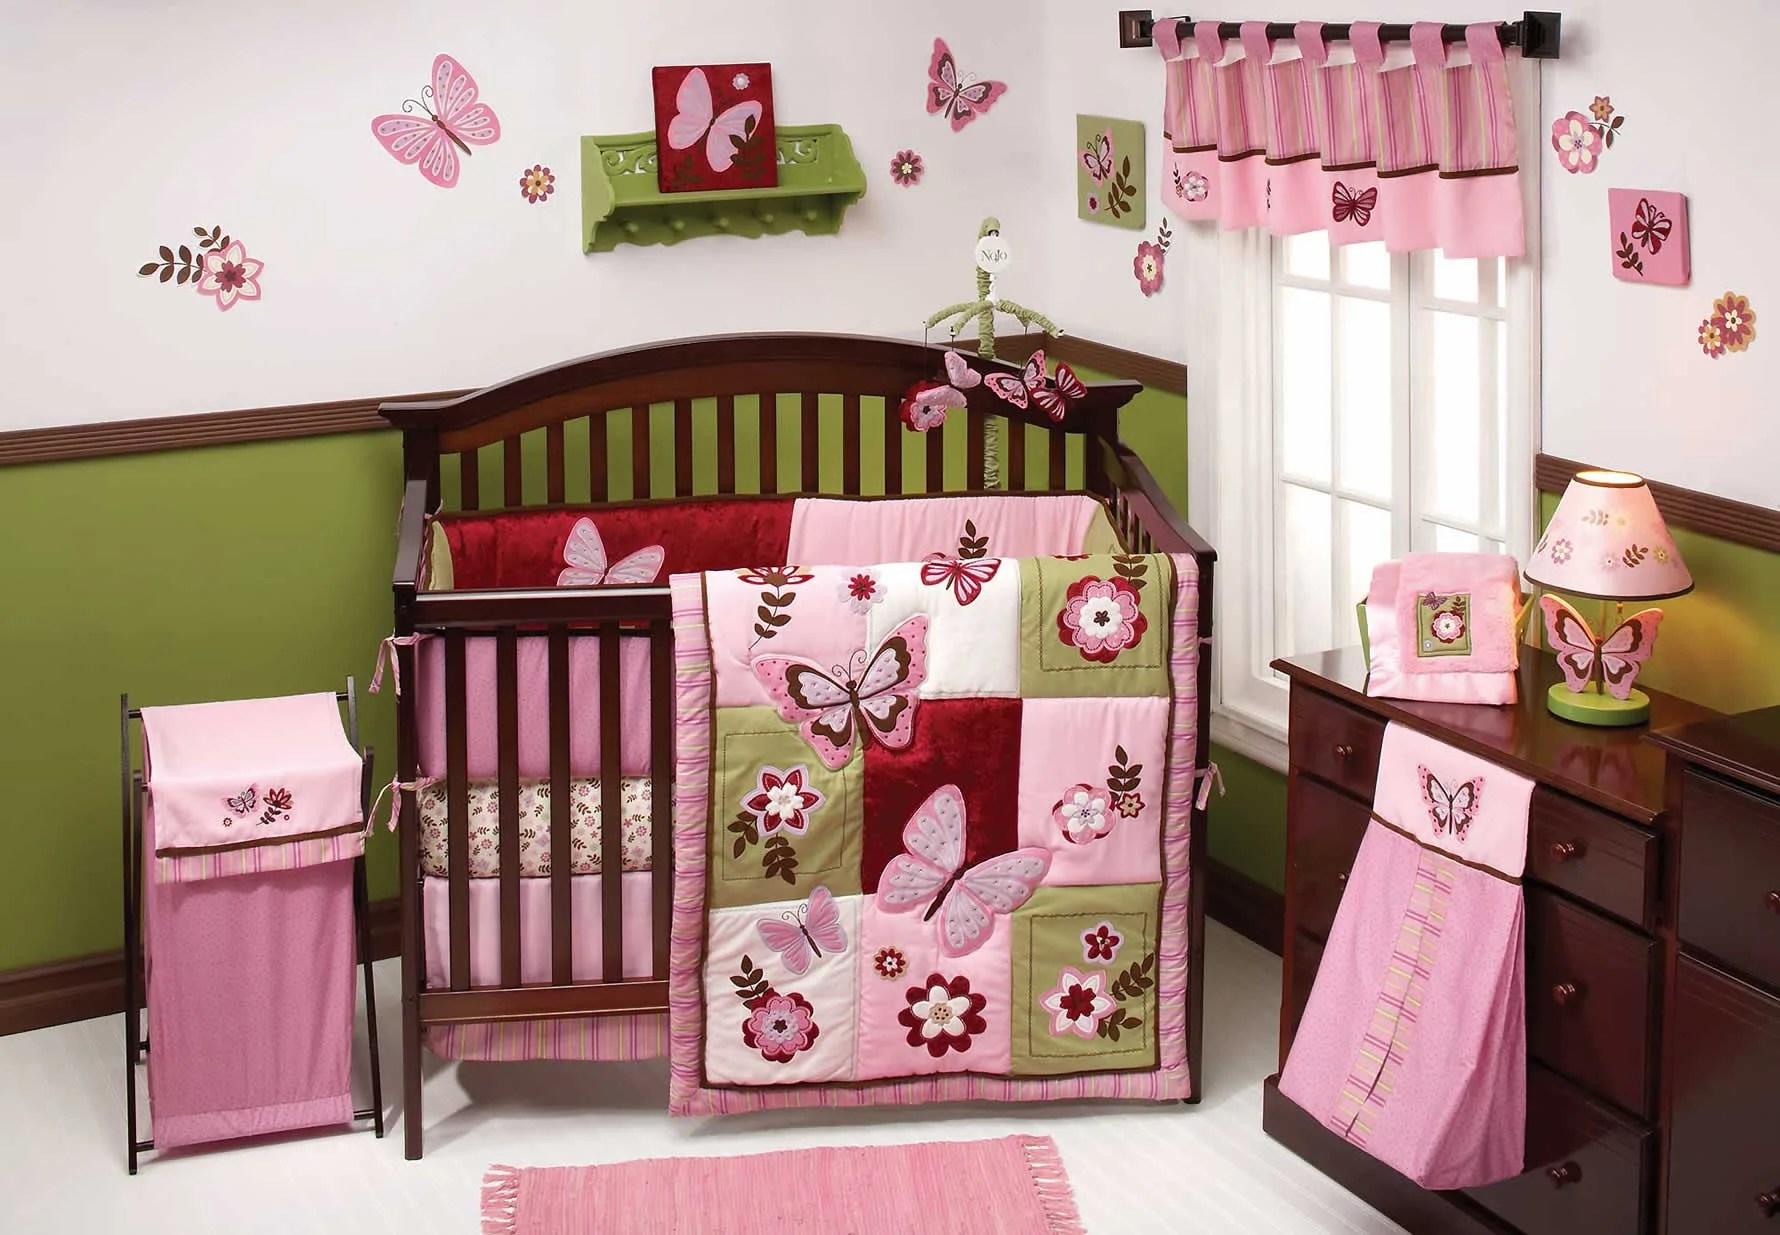 A complete crib with bedding set